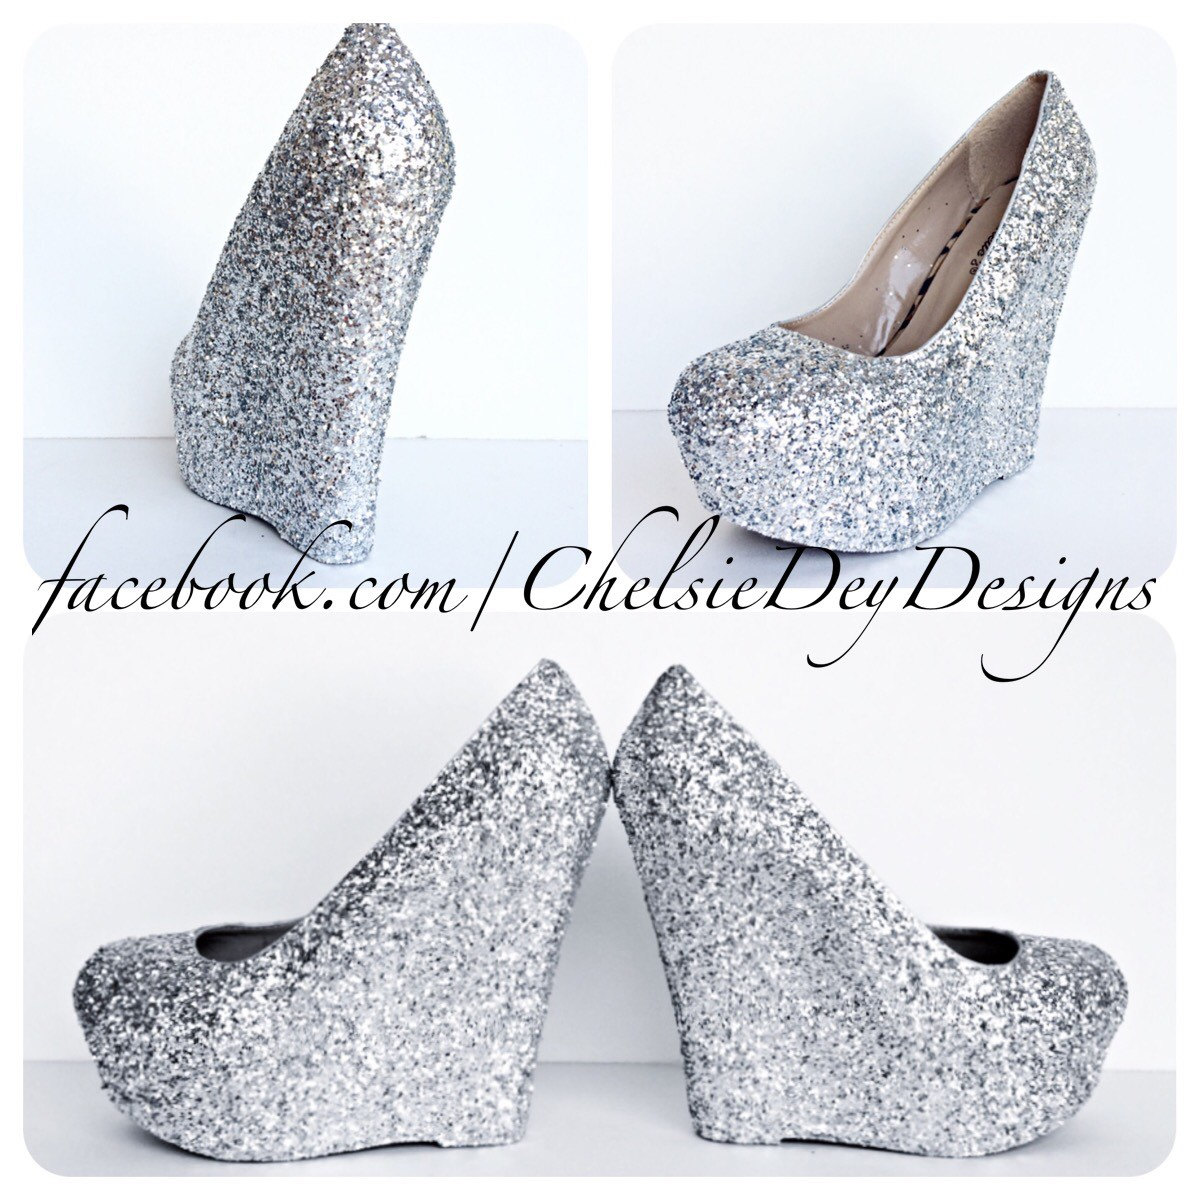 5ed09d9b65d Silver Glitter Wedges - Sparkly Platform Heel - Glitzy Wedding Heels - Prom  Wedges from Chelsie Dey Designs